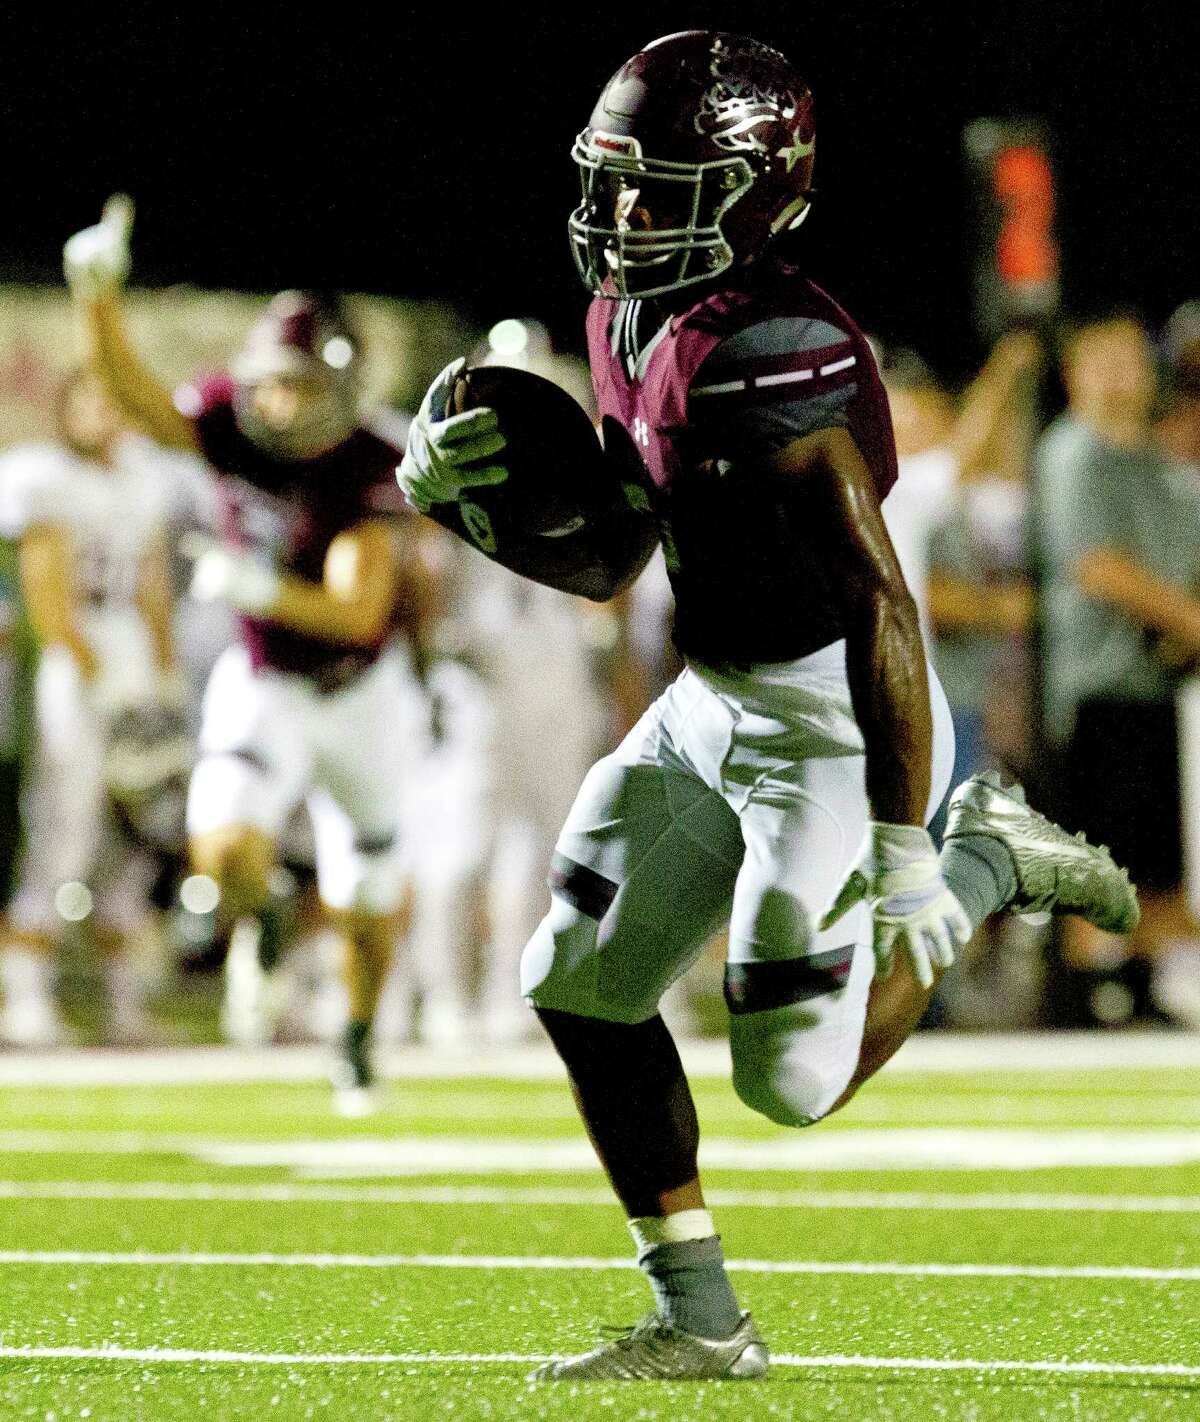 Magnolia wide receiver Anthony Johnson (5) runs after catching a pass from quarterback Jacob Frazier for a 48-yard touchdown during the second quarter of a District 21-5A high school football game Friday, Sept. 23, 2016, in Magnolia.